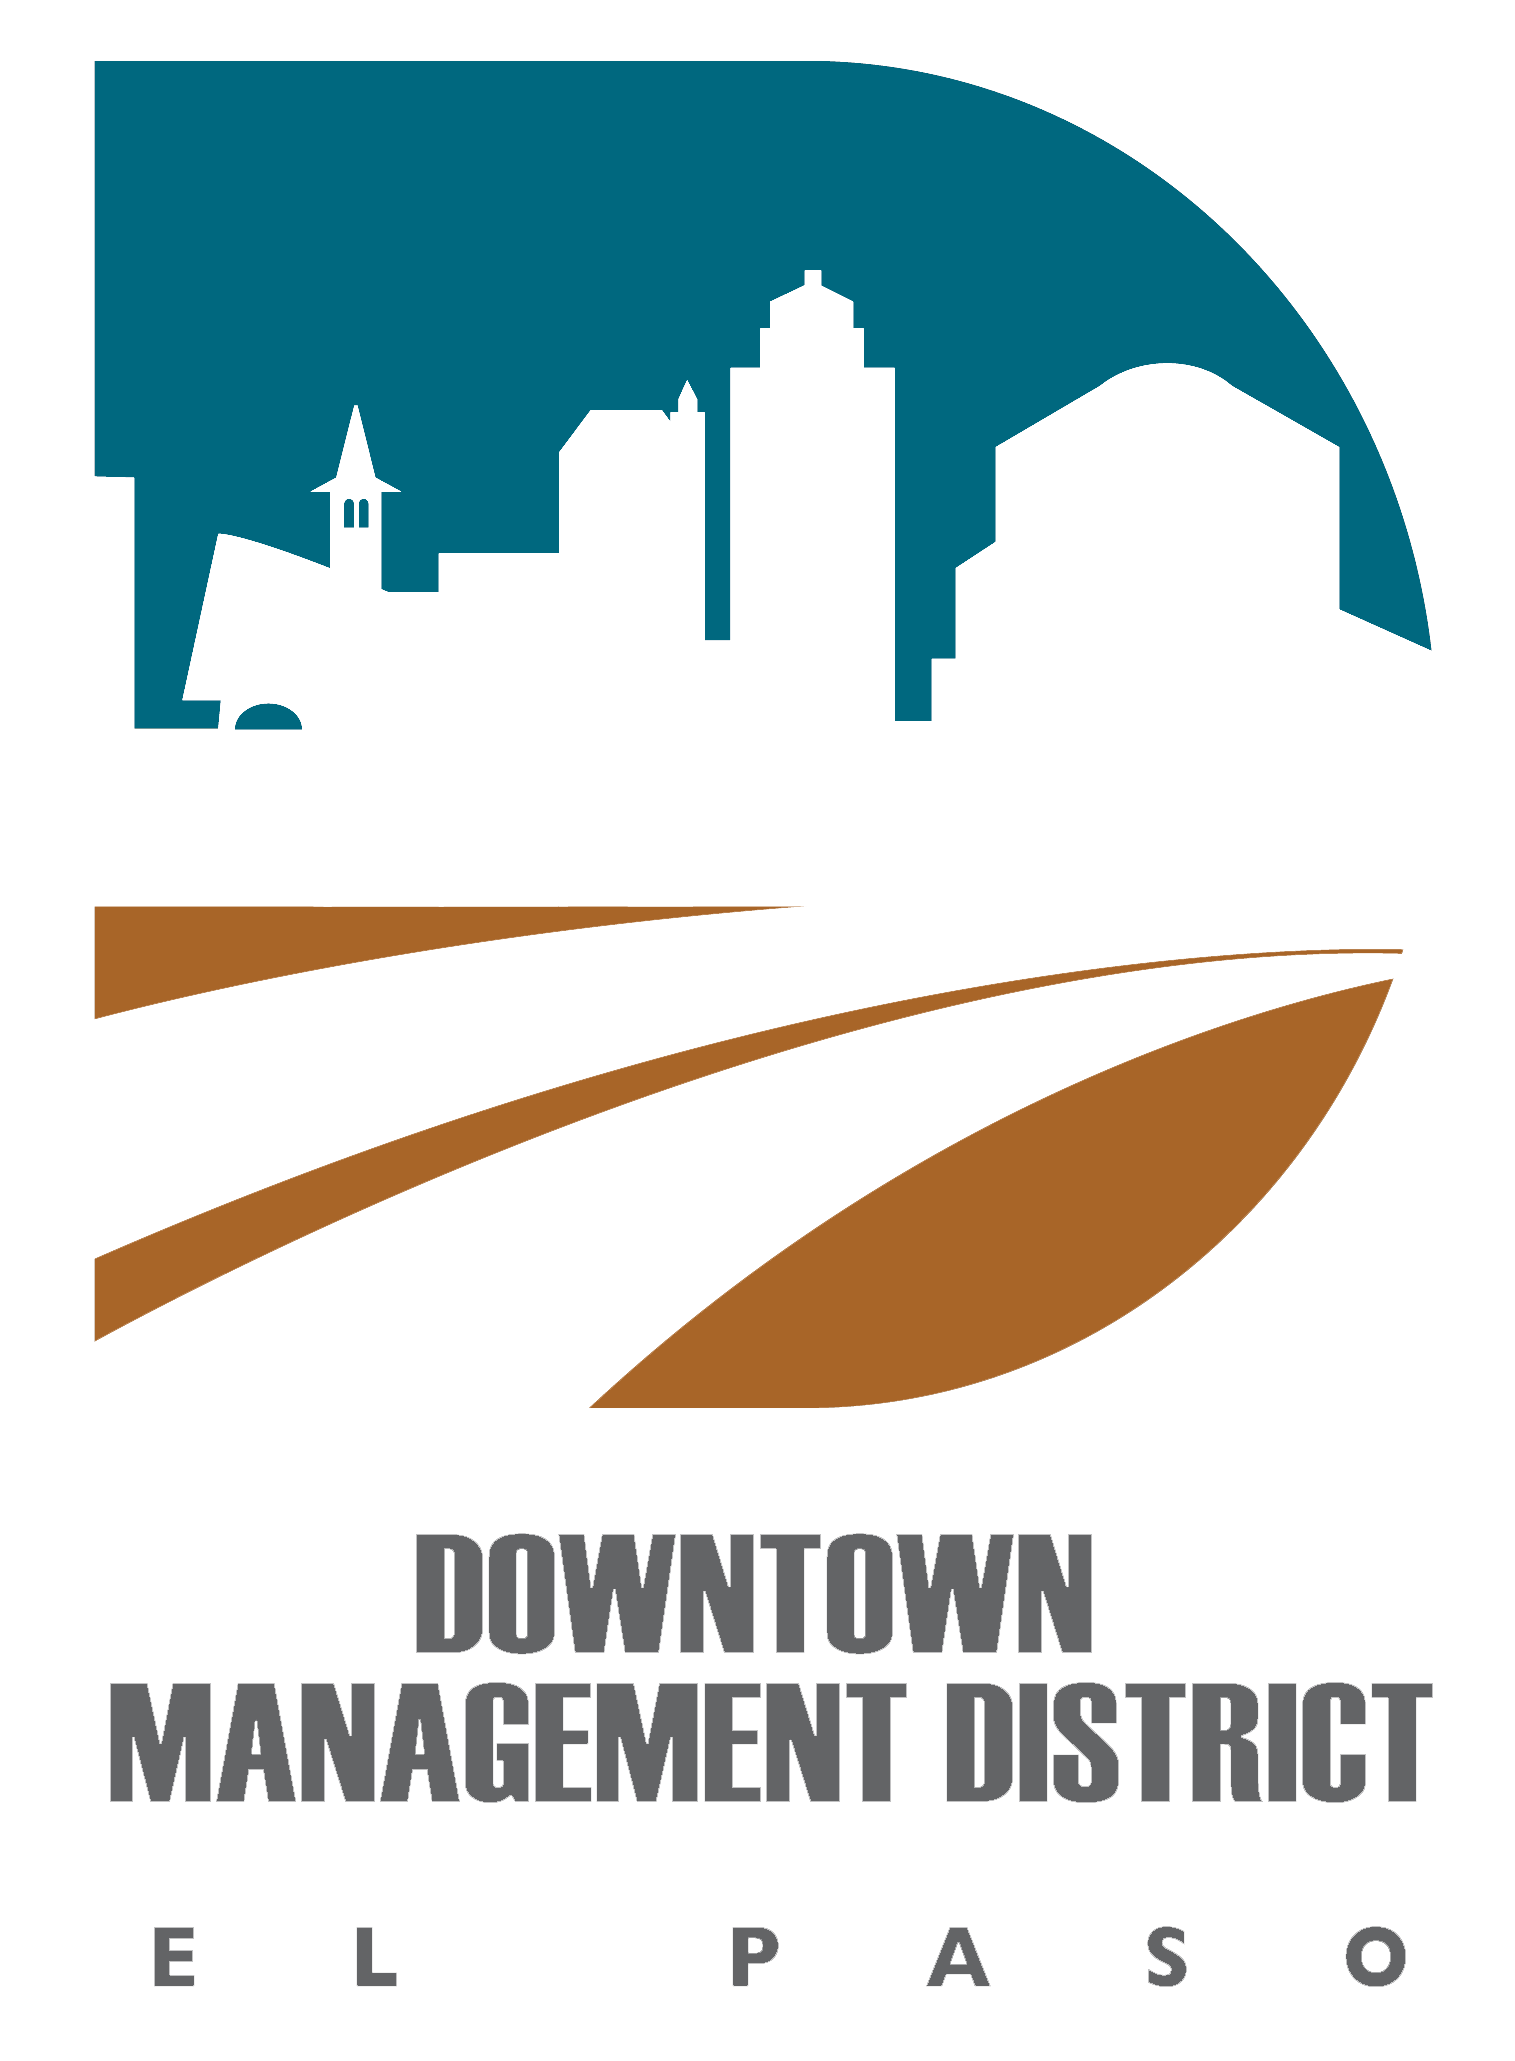 Downtown mangafement district LOGO (002).png